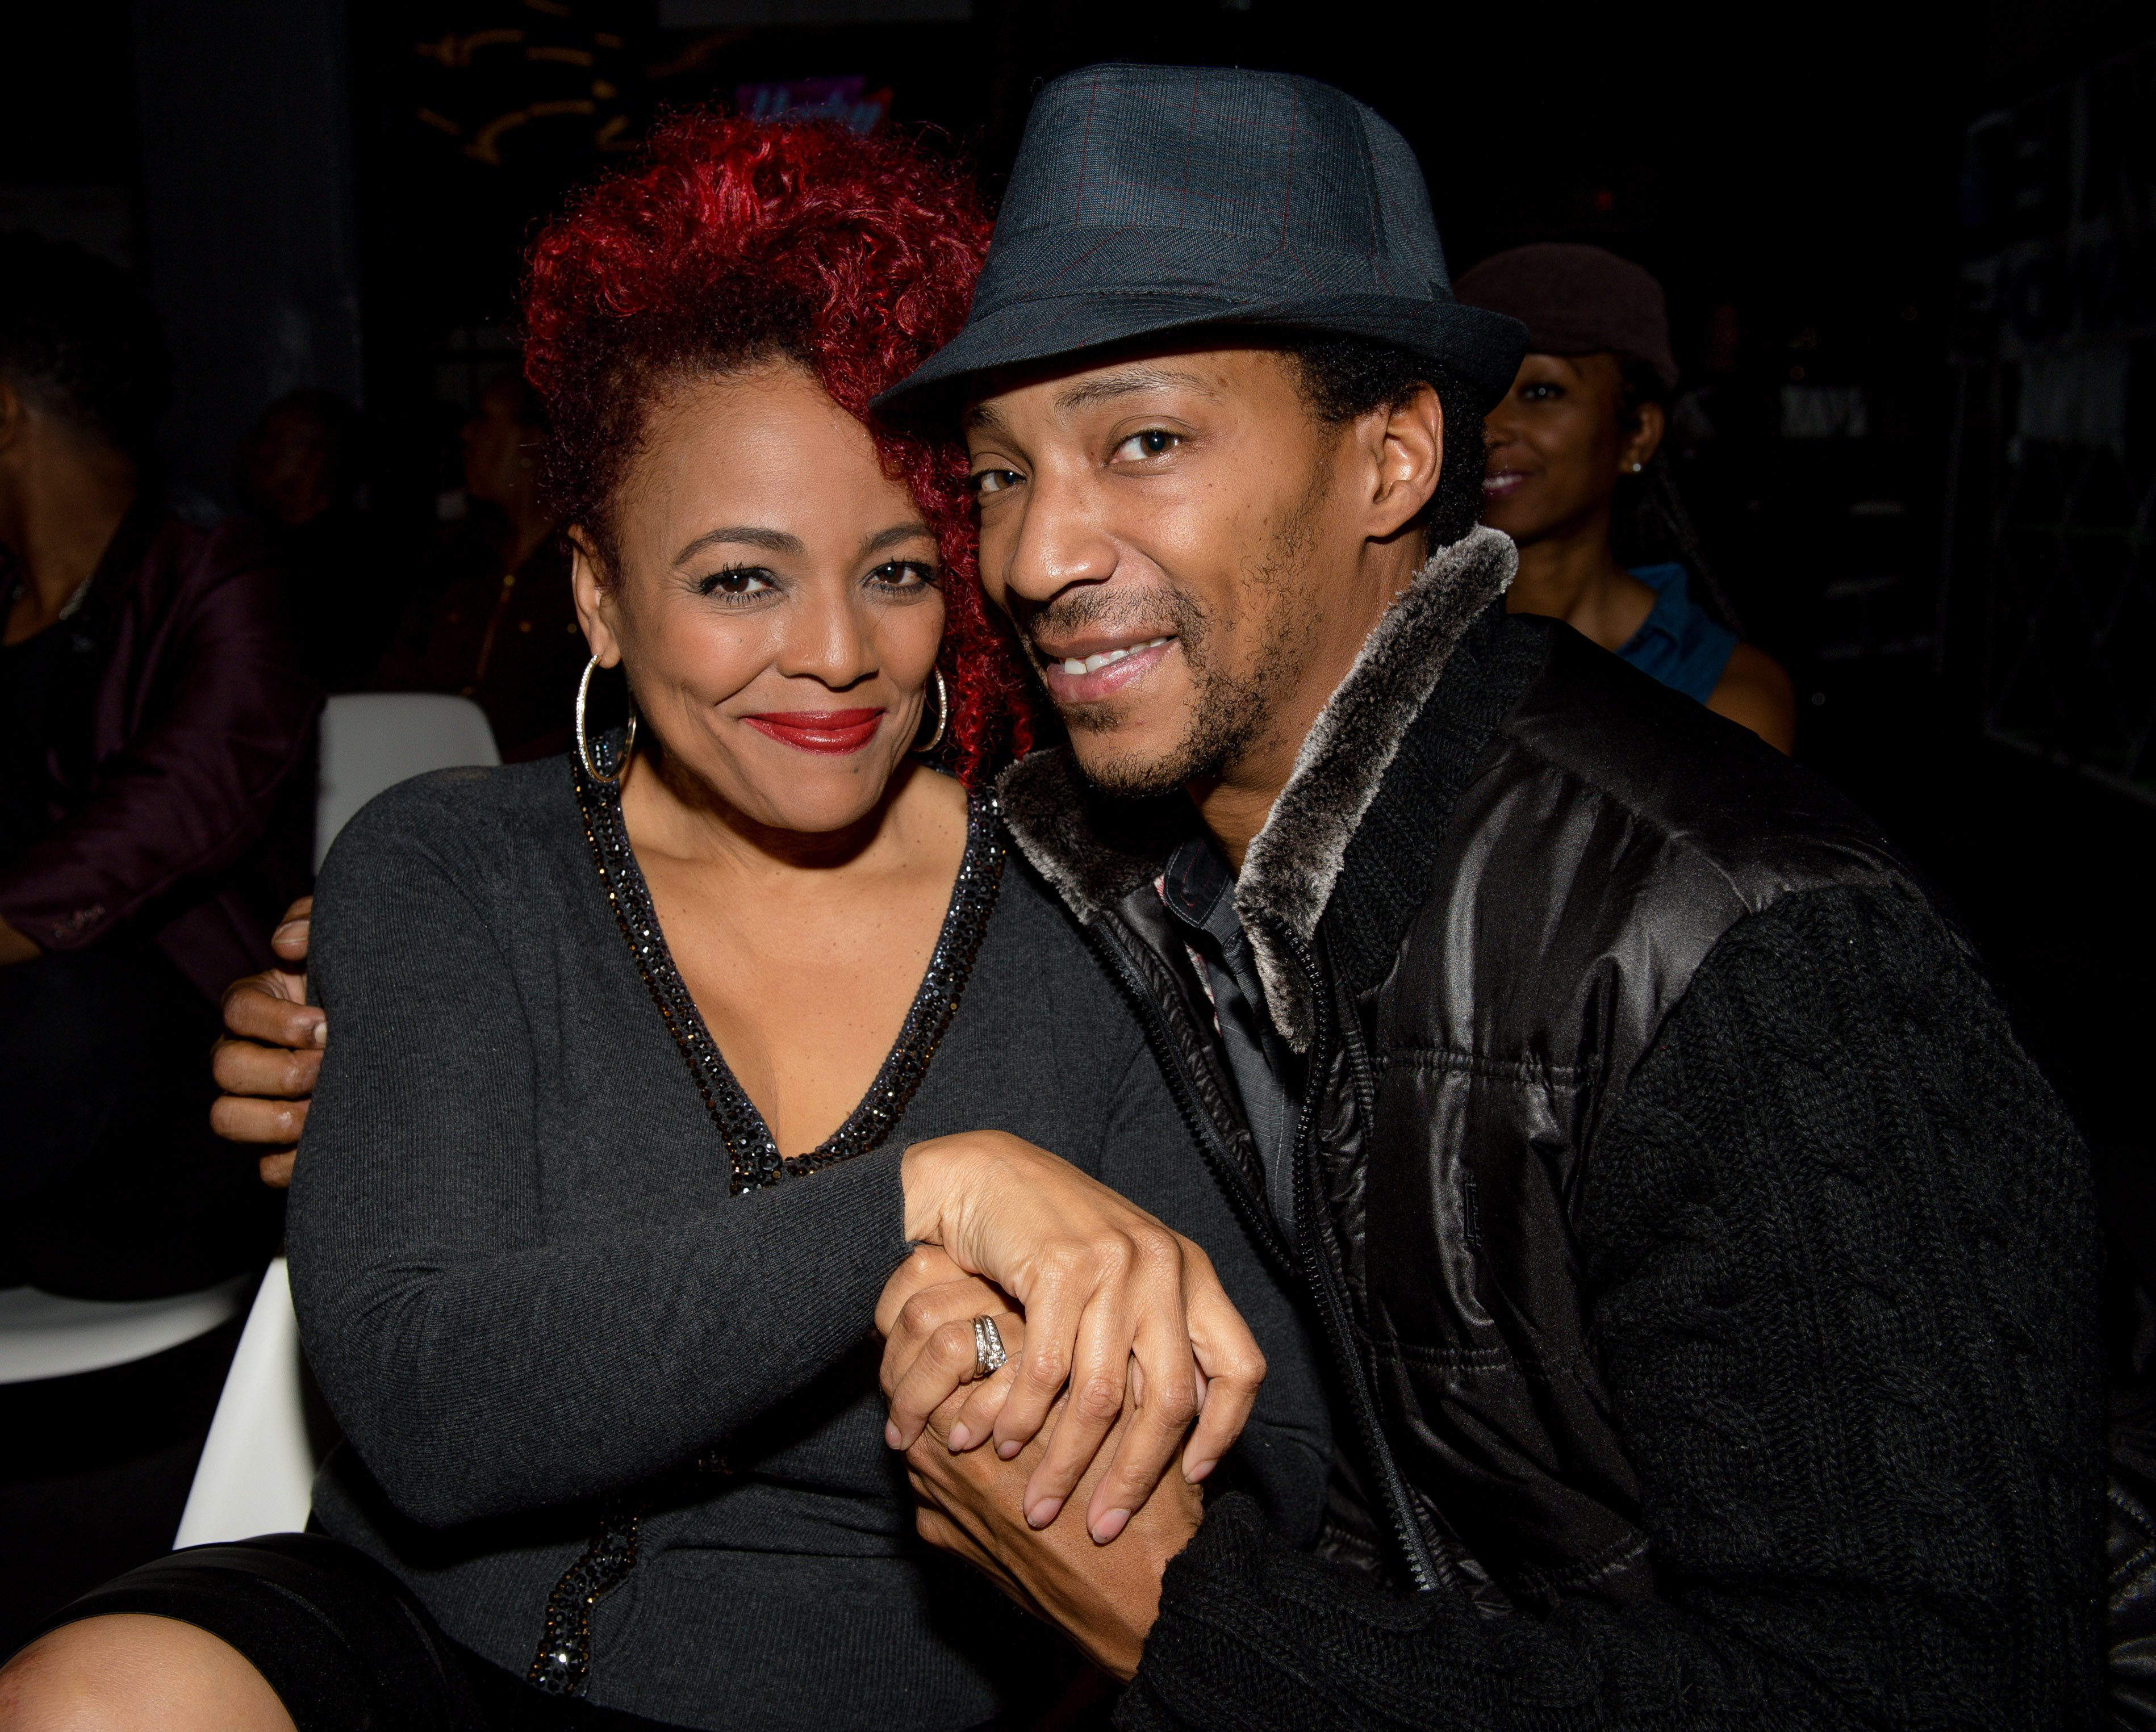 """Kim Fields & Christopher Morgan at the """"Happily After All"""" Book Release Celebration on Feb. 16, 2017 in Georgia 